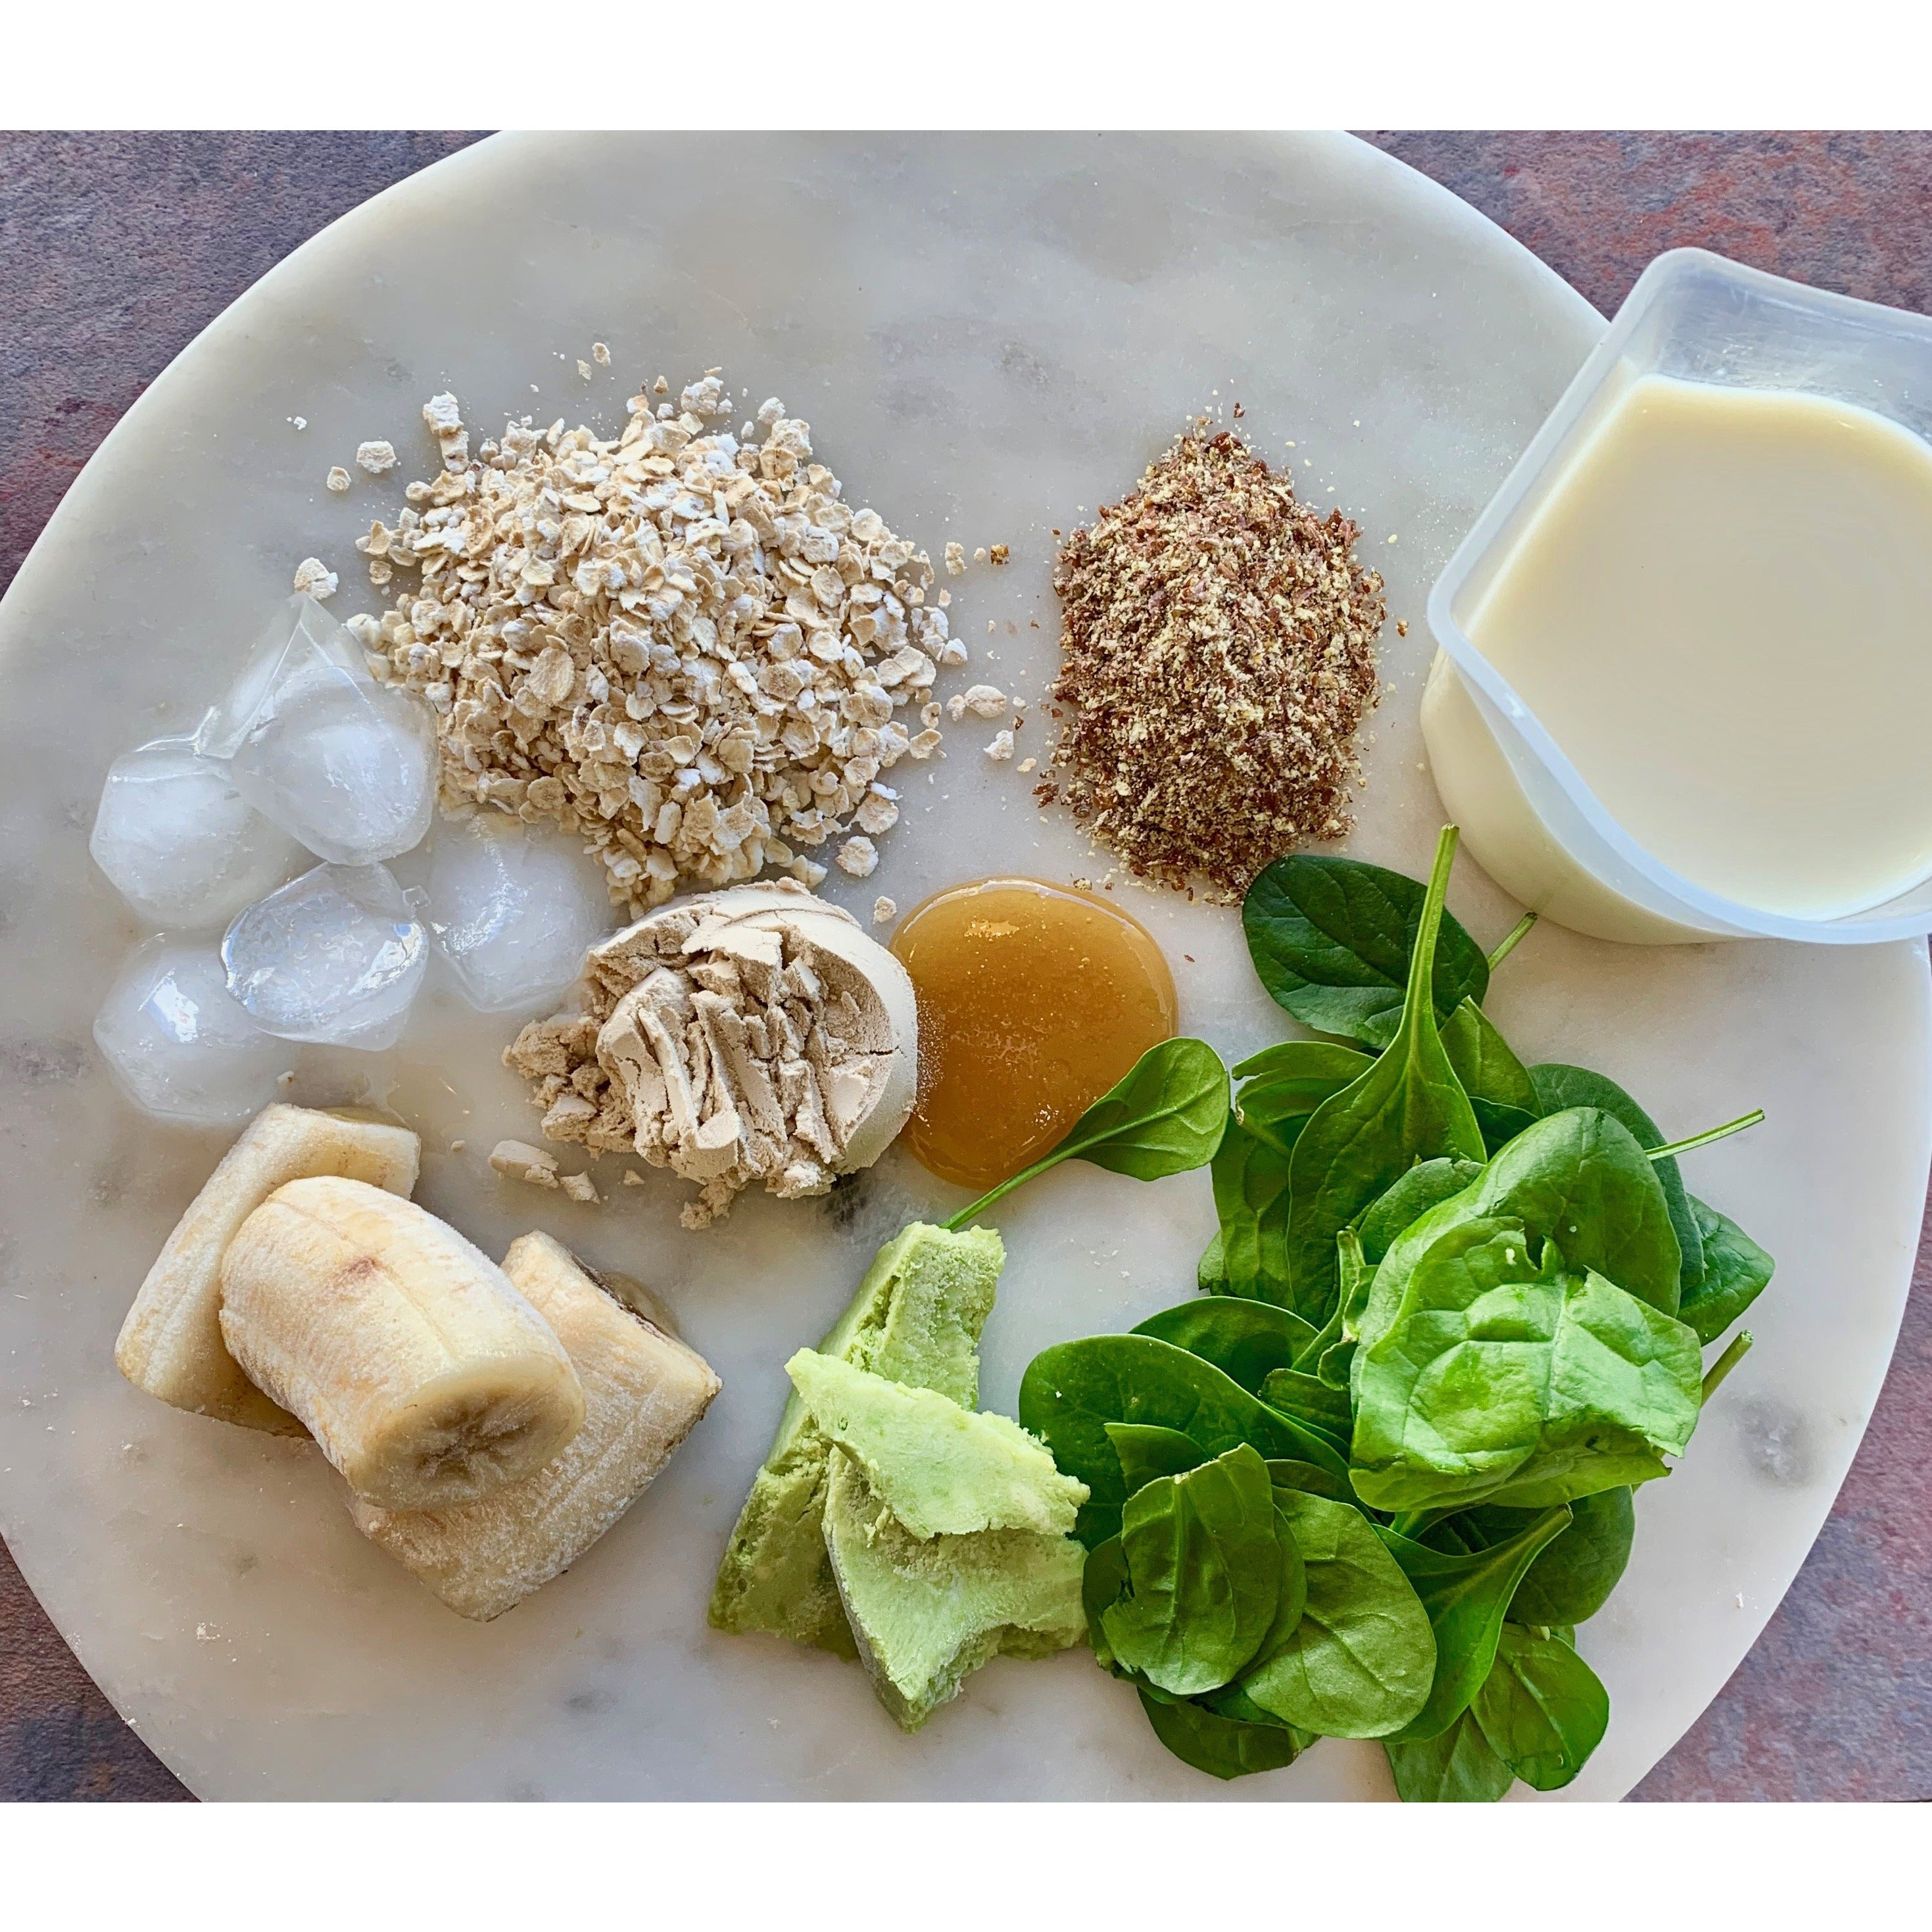 plant-based protein powder spinach flax meal brewers yeast banana avocado and milk